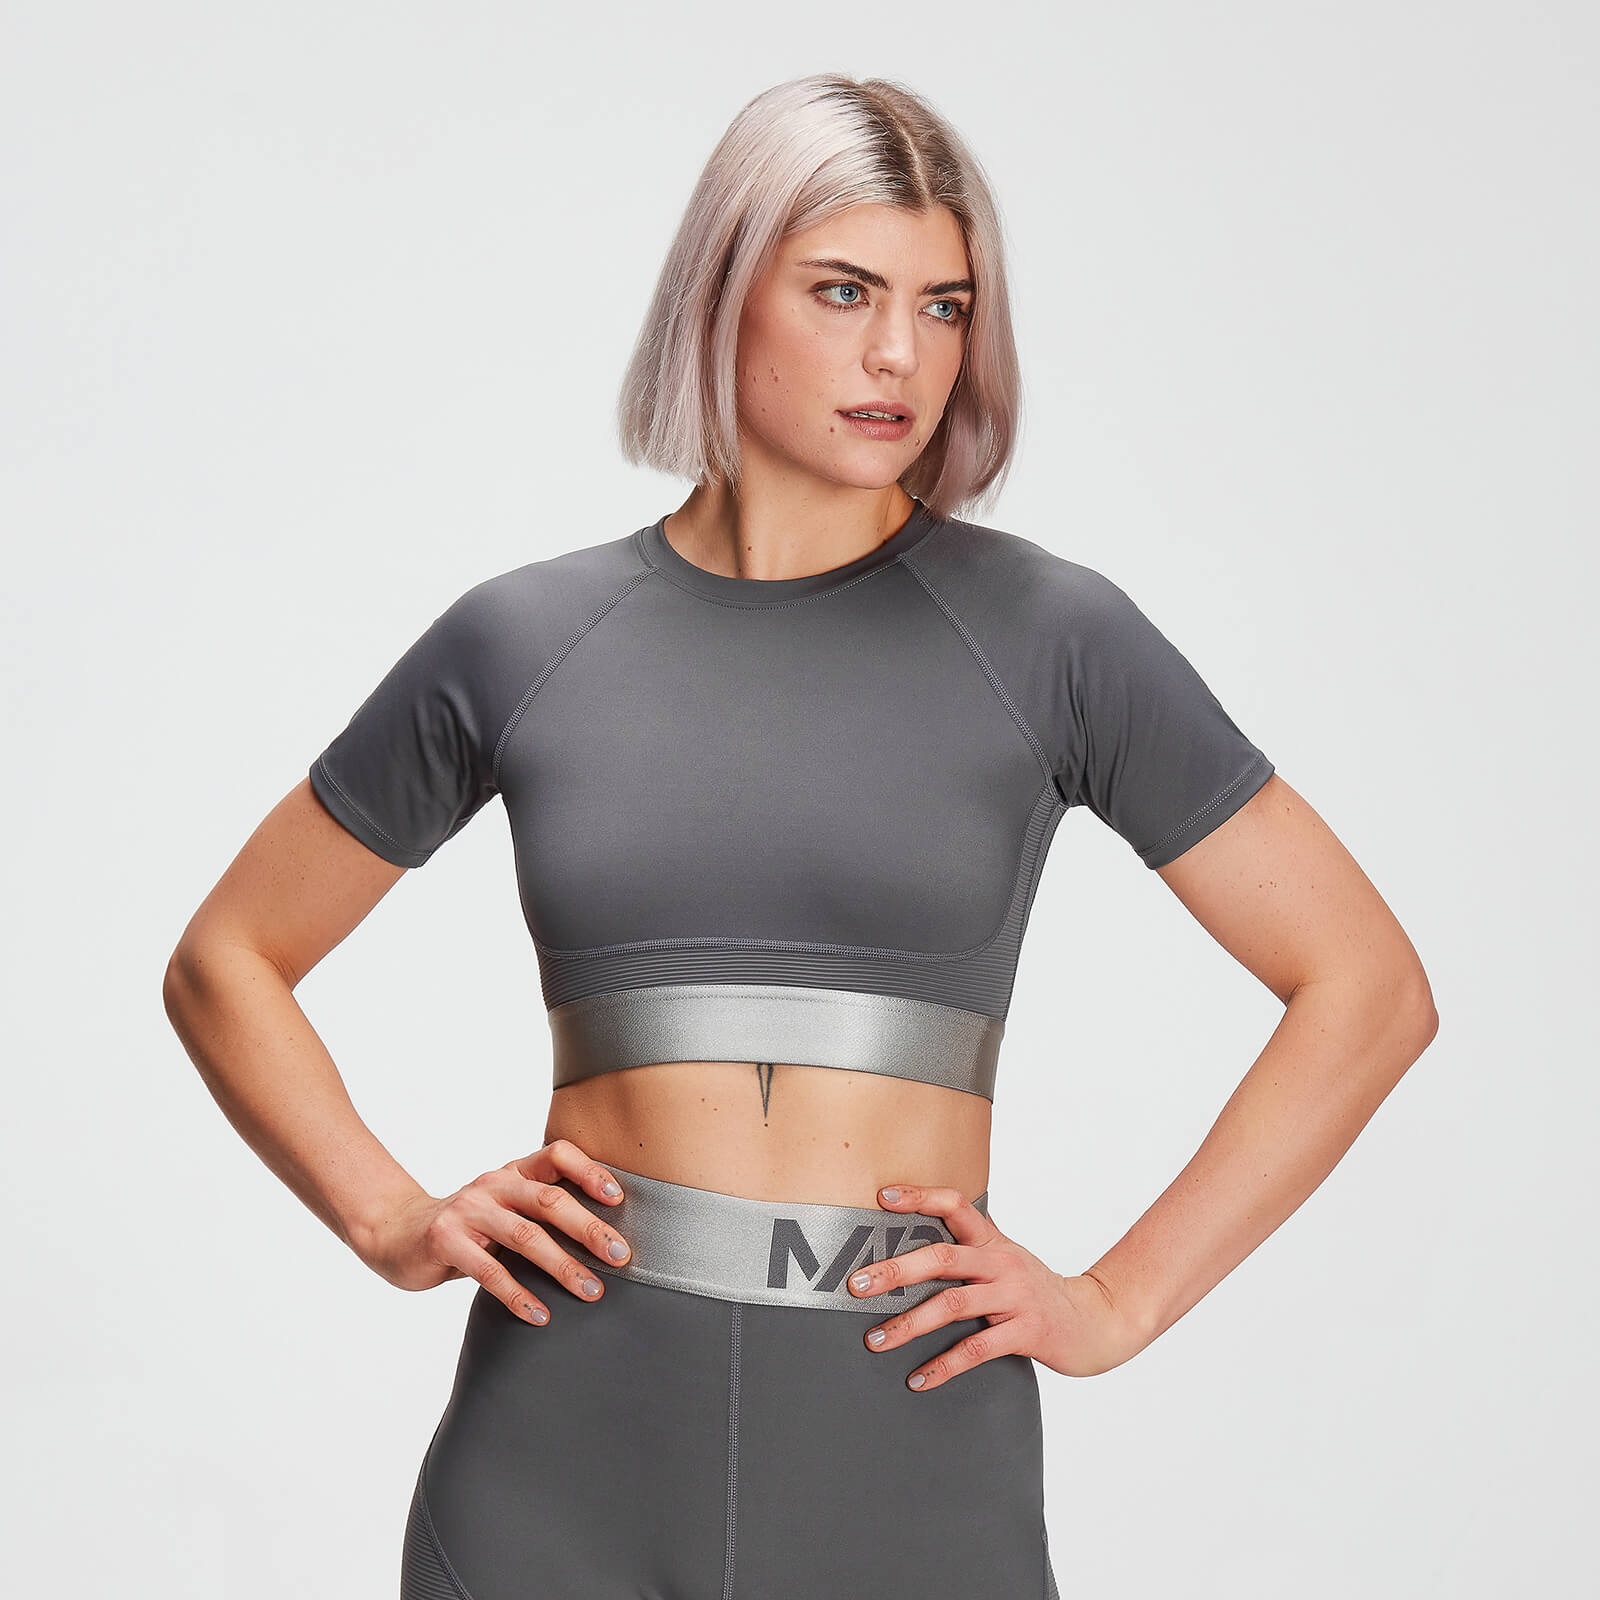 Crop top texturé MP Adapt pour femmes – Carbone - M